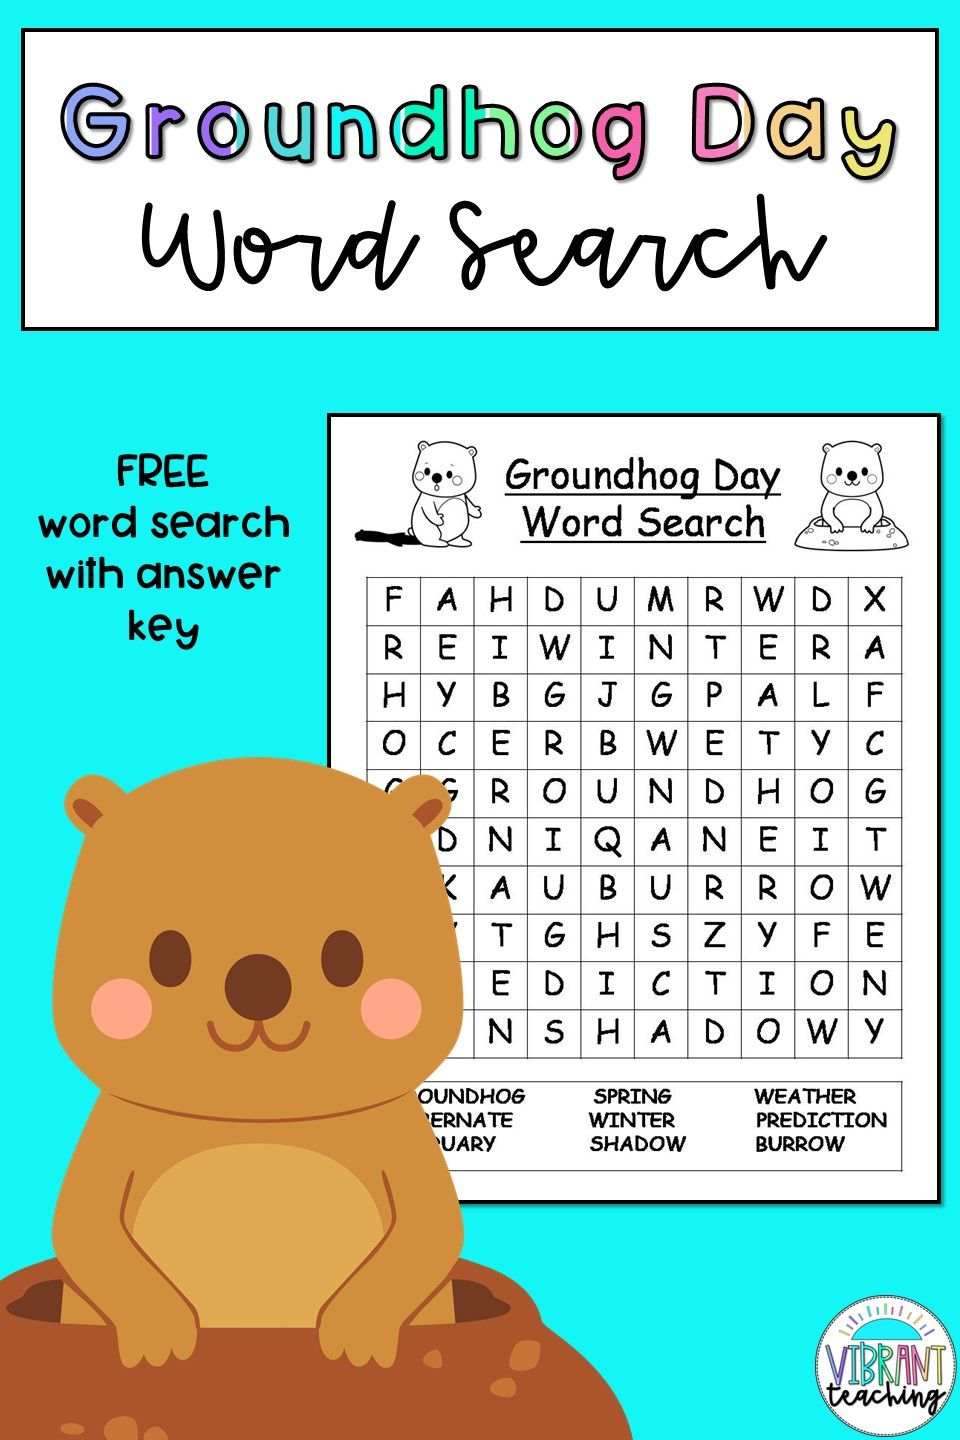 Groundhog Day Word Search in 2021   Groundhog day activities [ 1440 x 960 Pixel ]